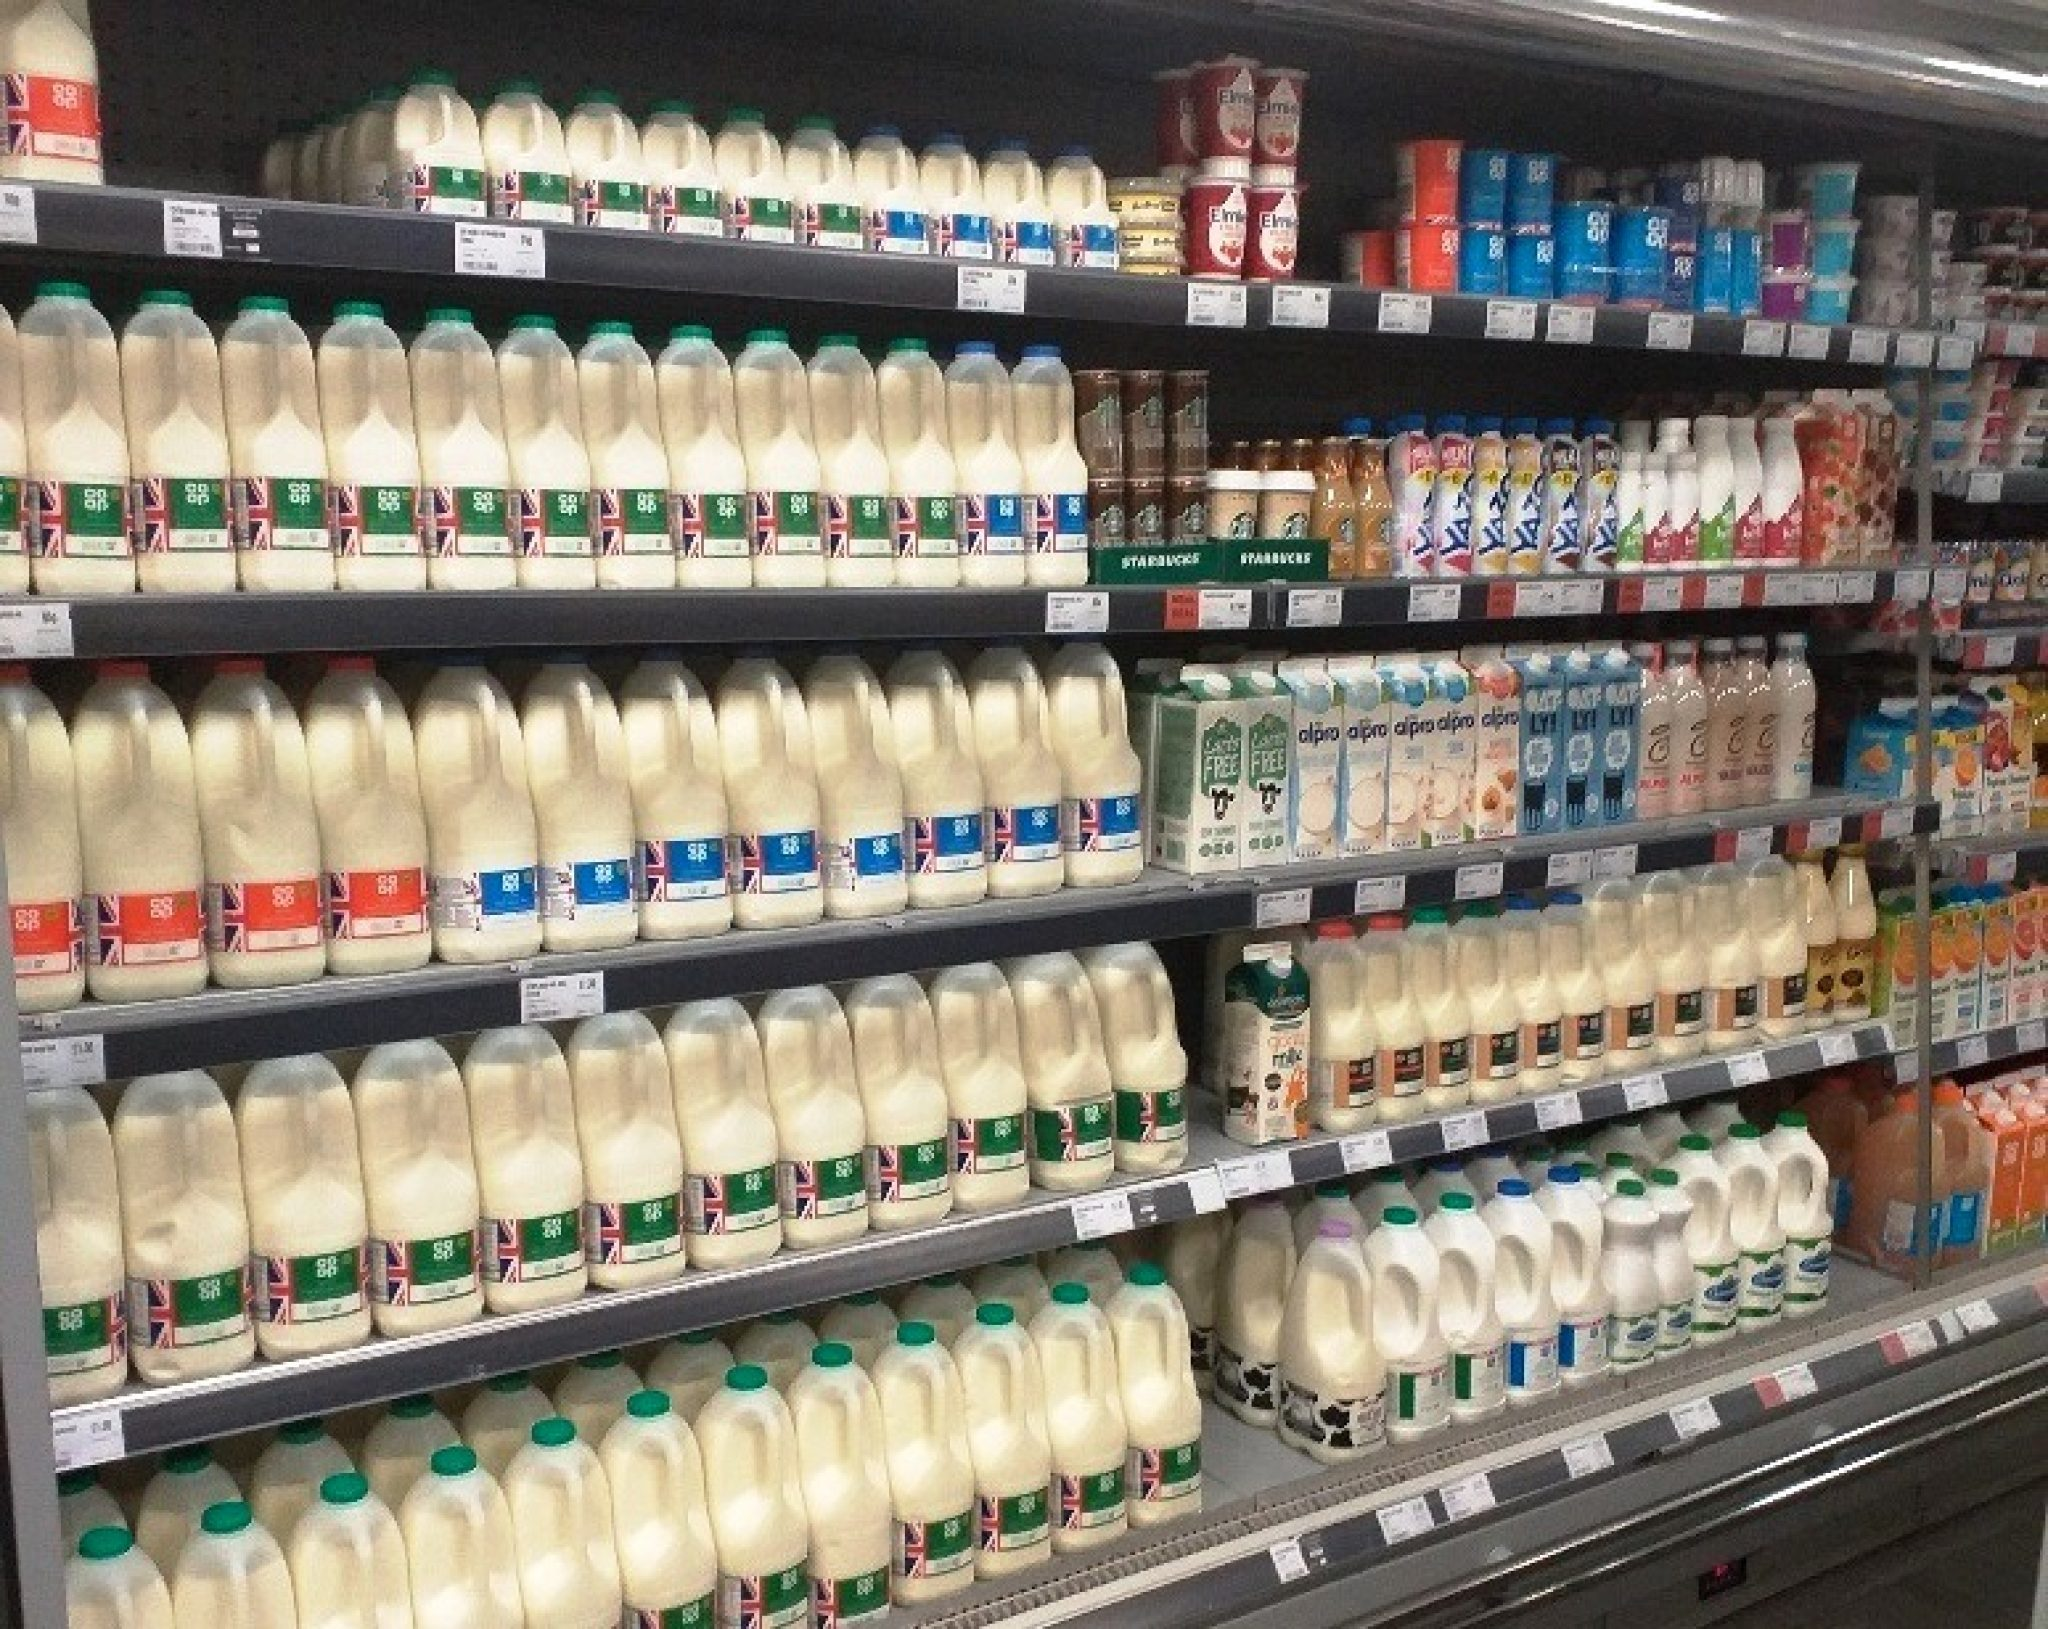 Southern Co-op focuses on refrigeration efficiency